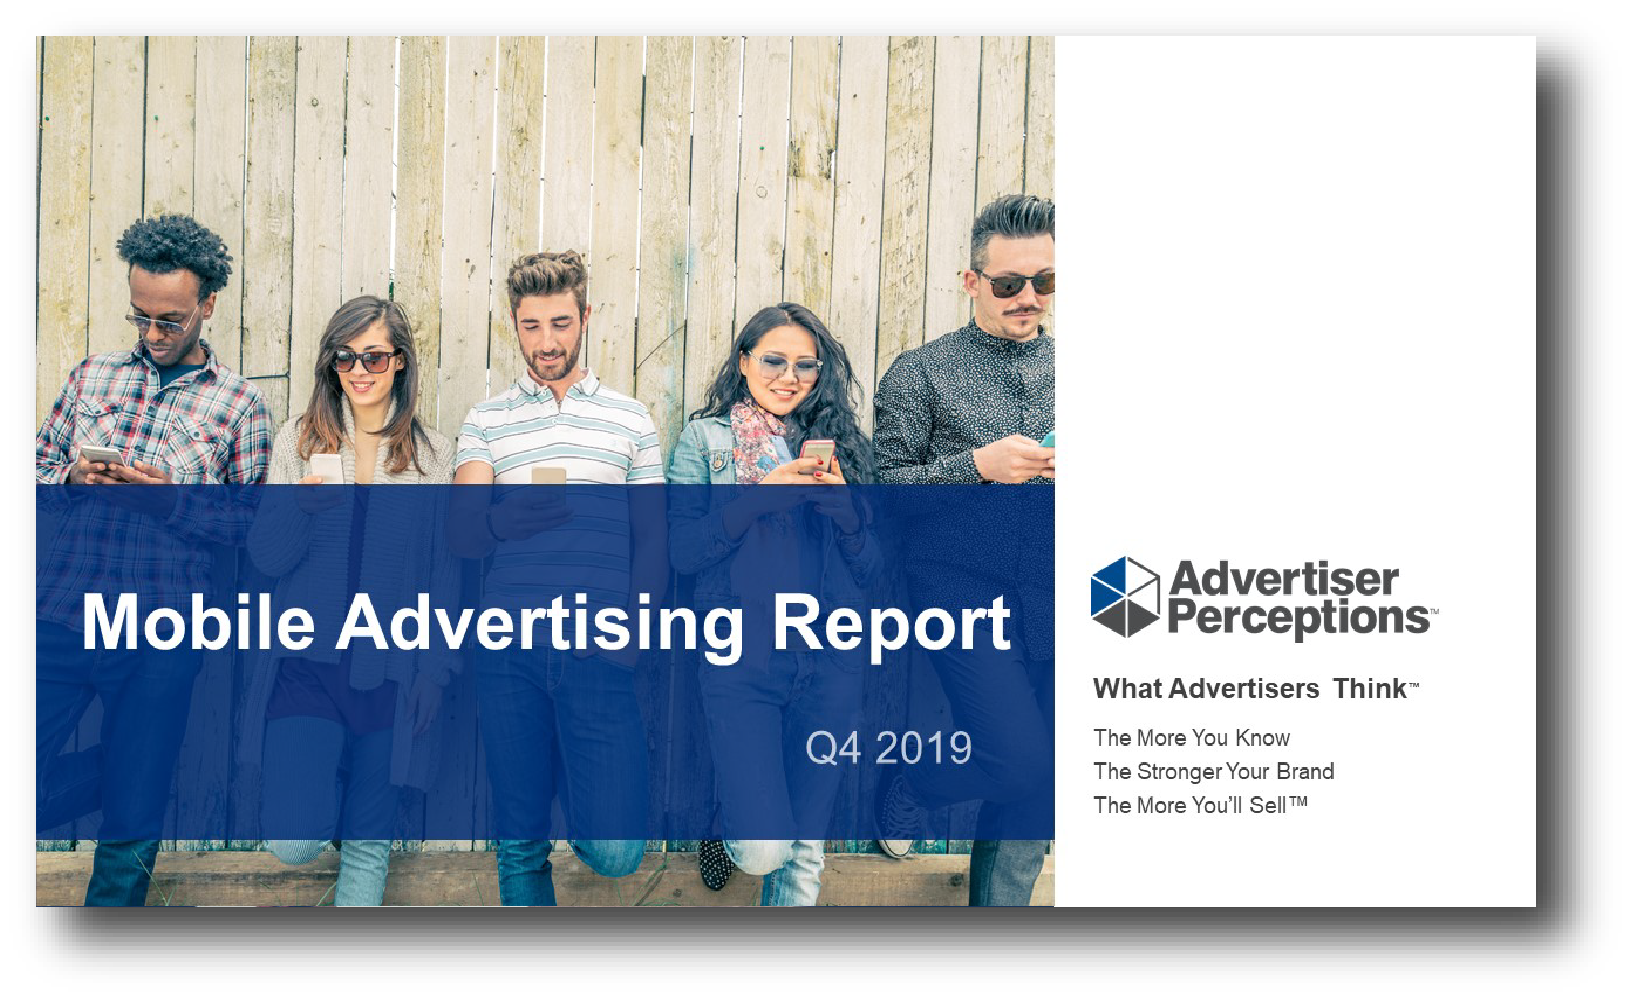 Mobile Advertising Report